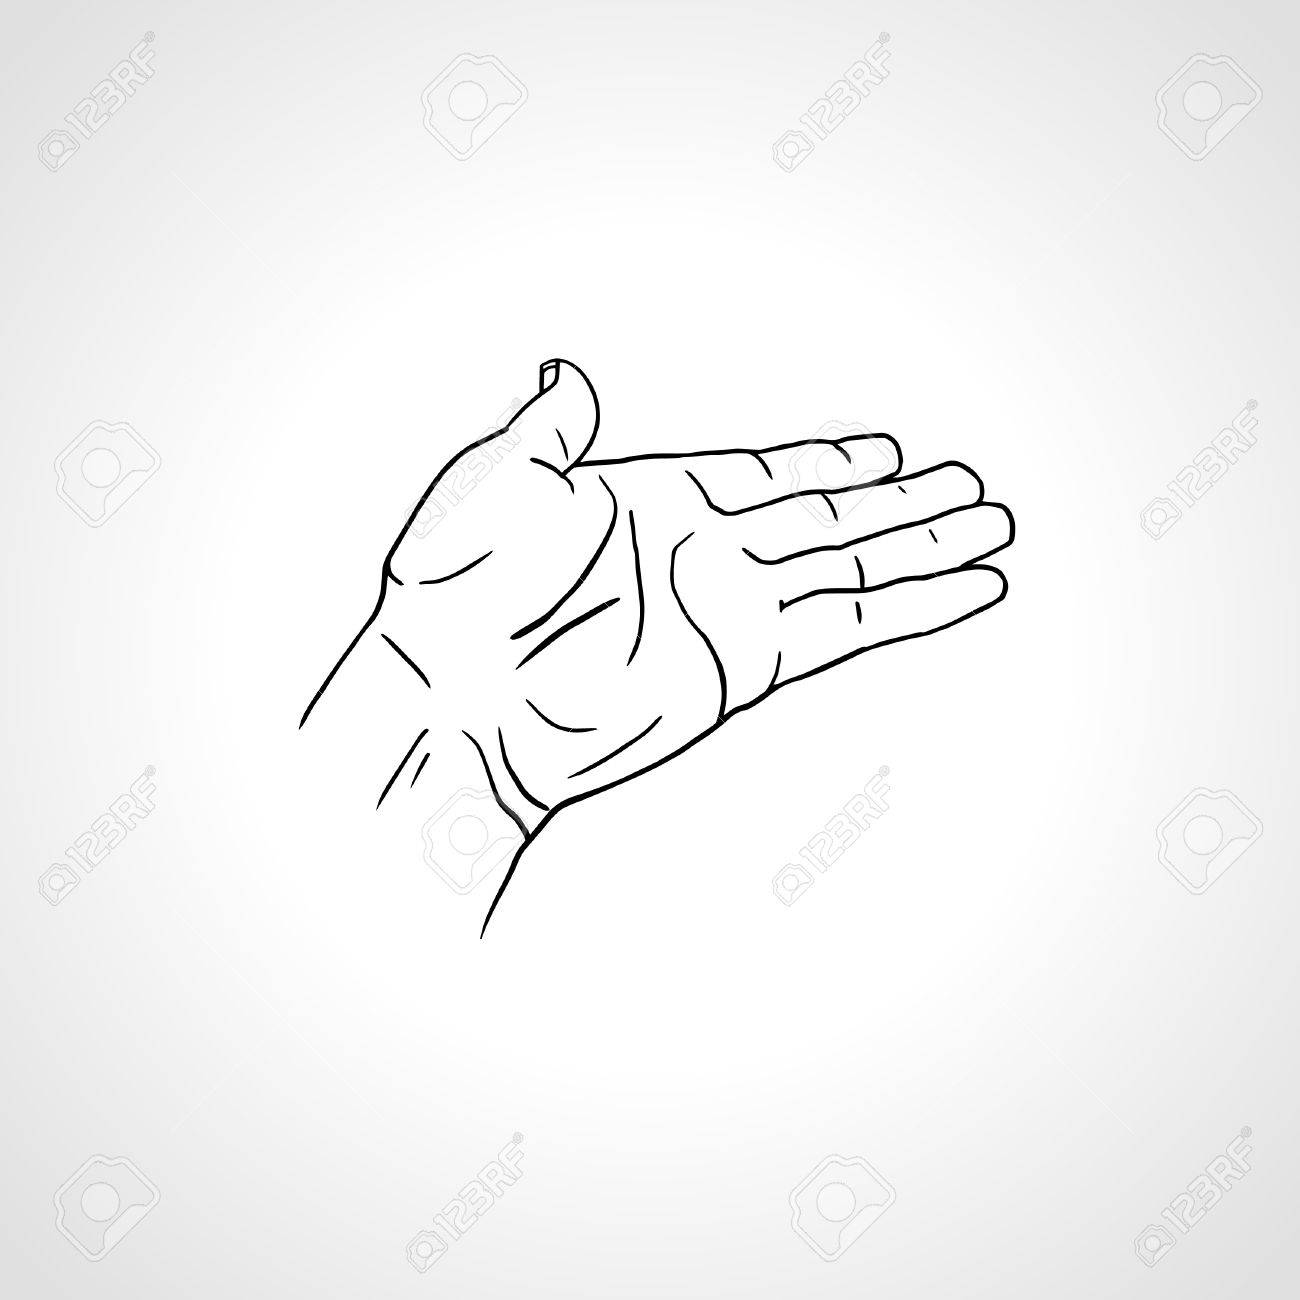 open empty line art drawing hand isolated on white background close